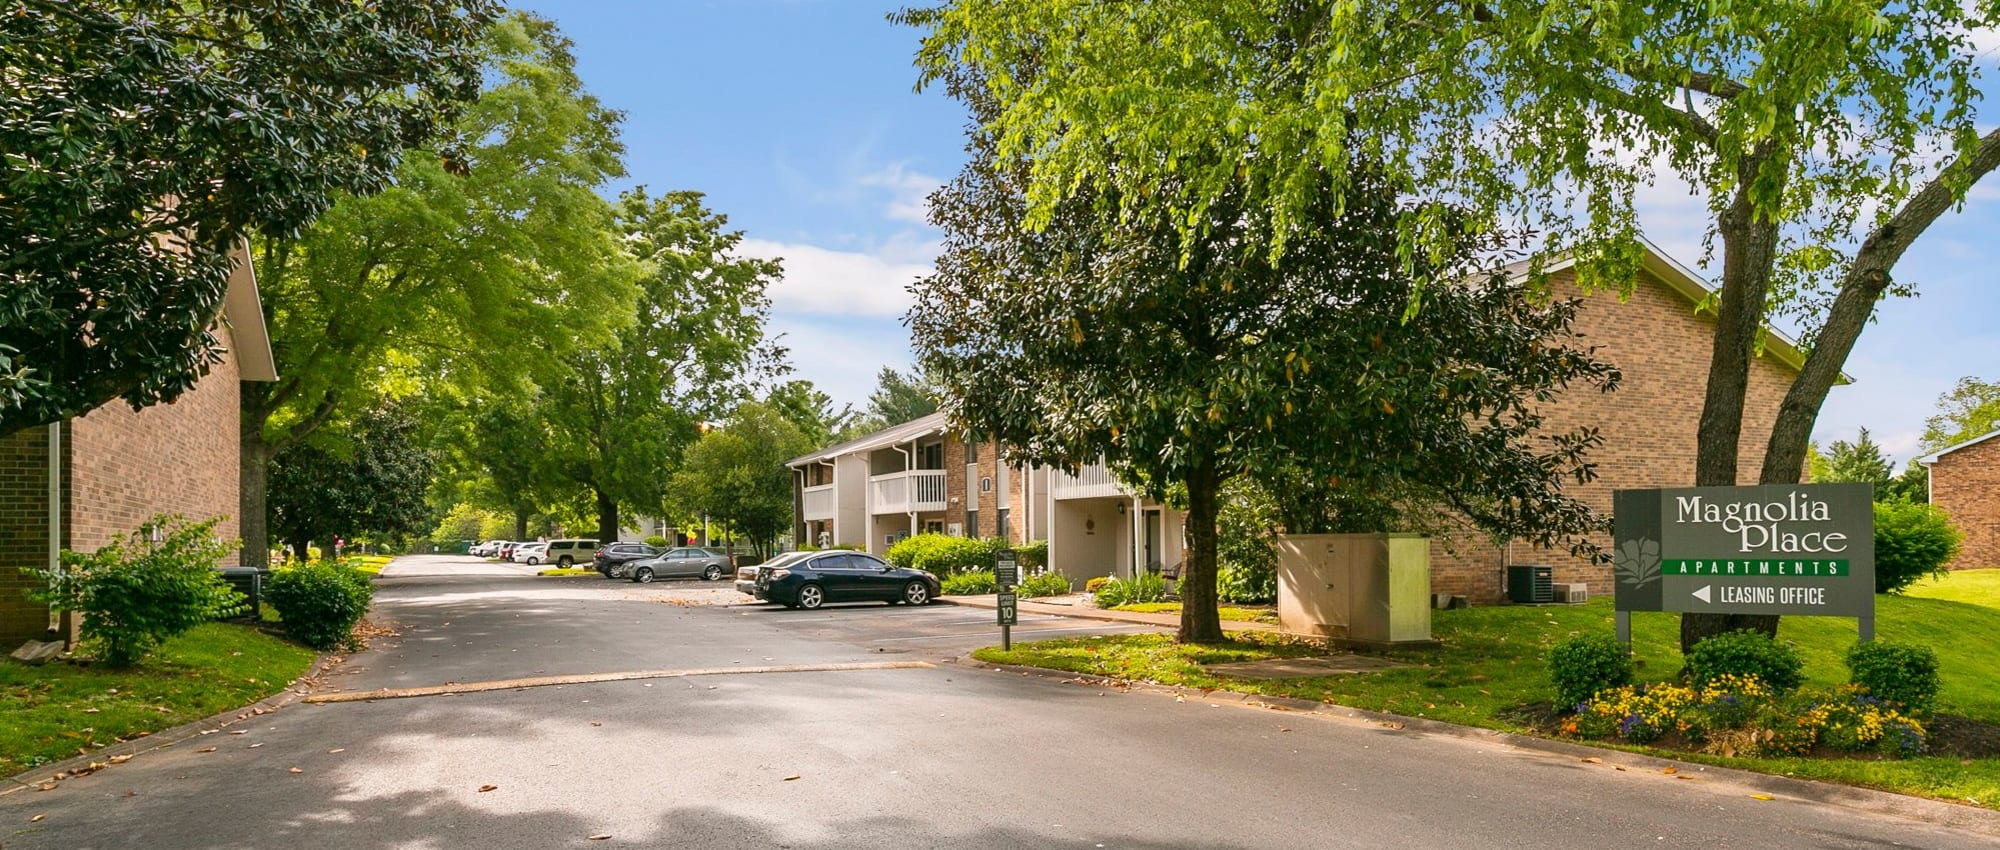 Franklin Tn Apartments For Rent Near Yorktown Magnolia Place